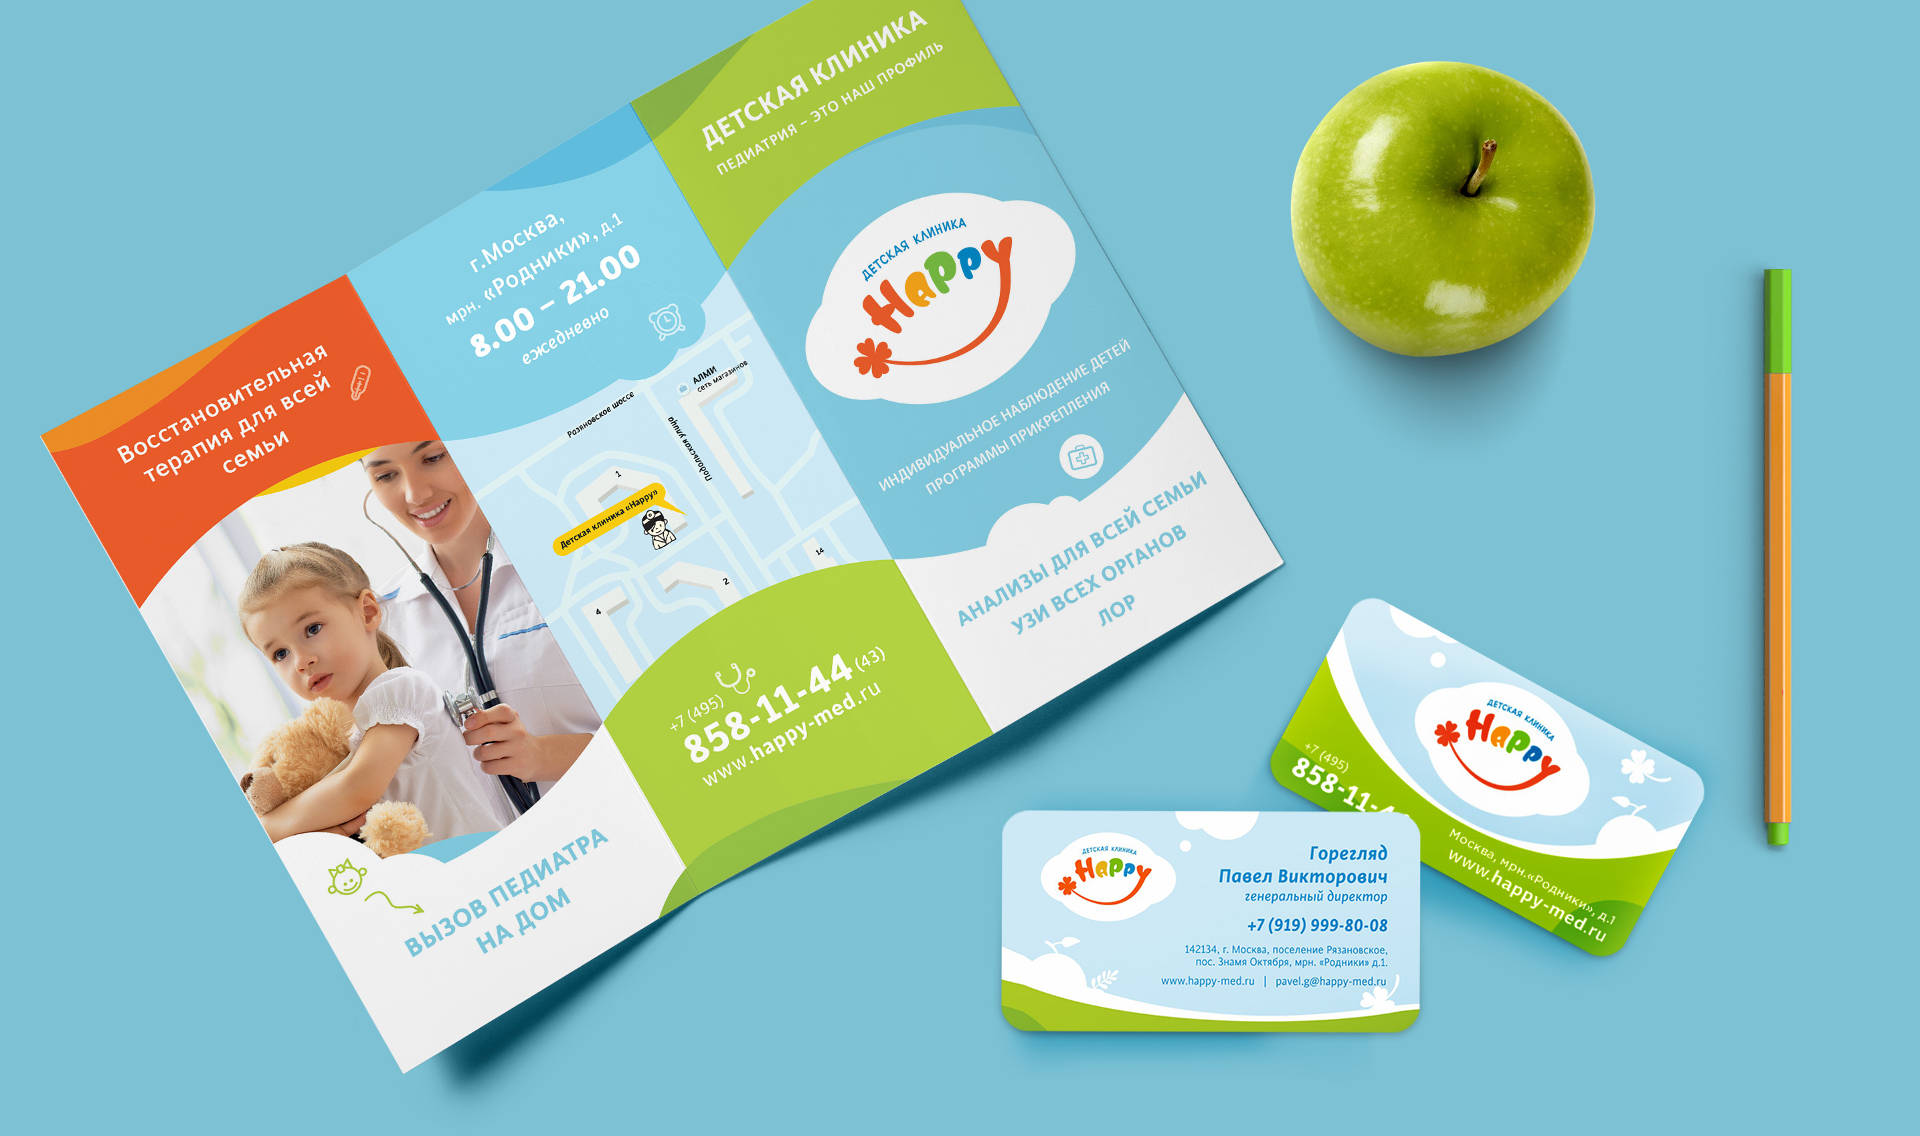 Брендинг детской of the medical clinic, Children's medical clinic branding